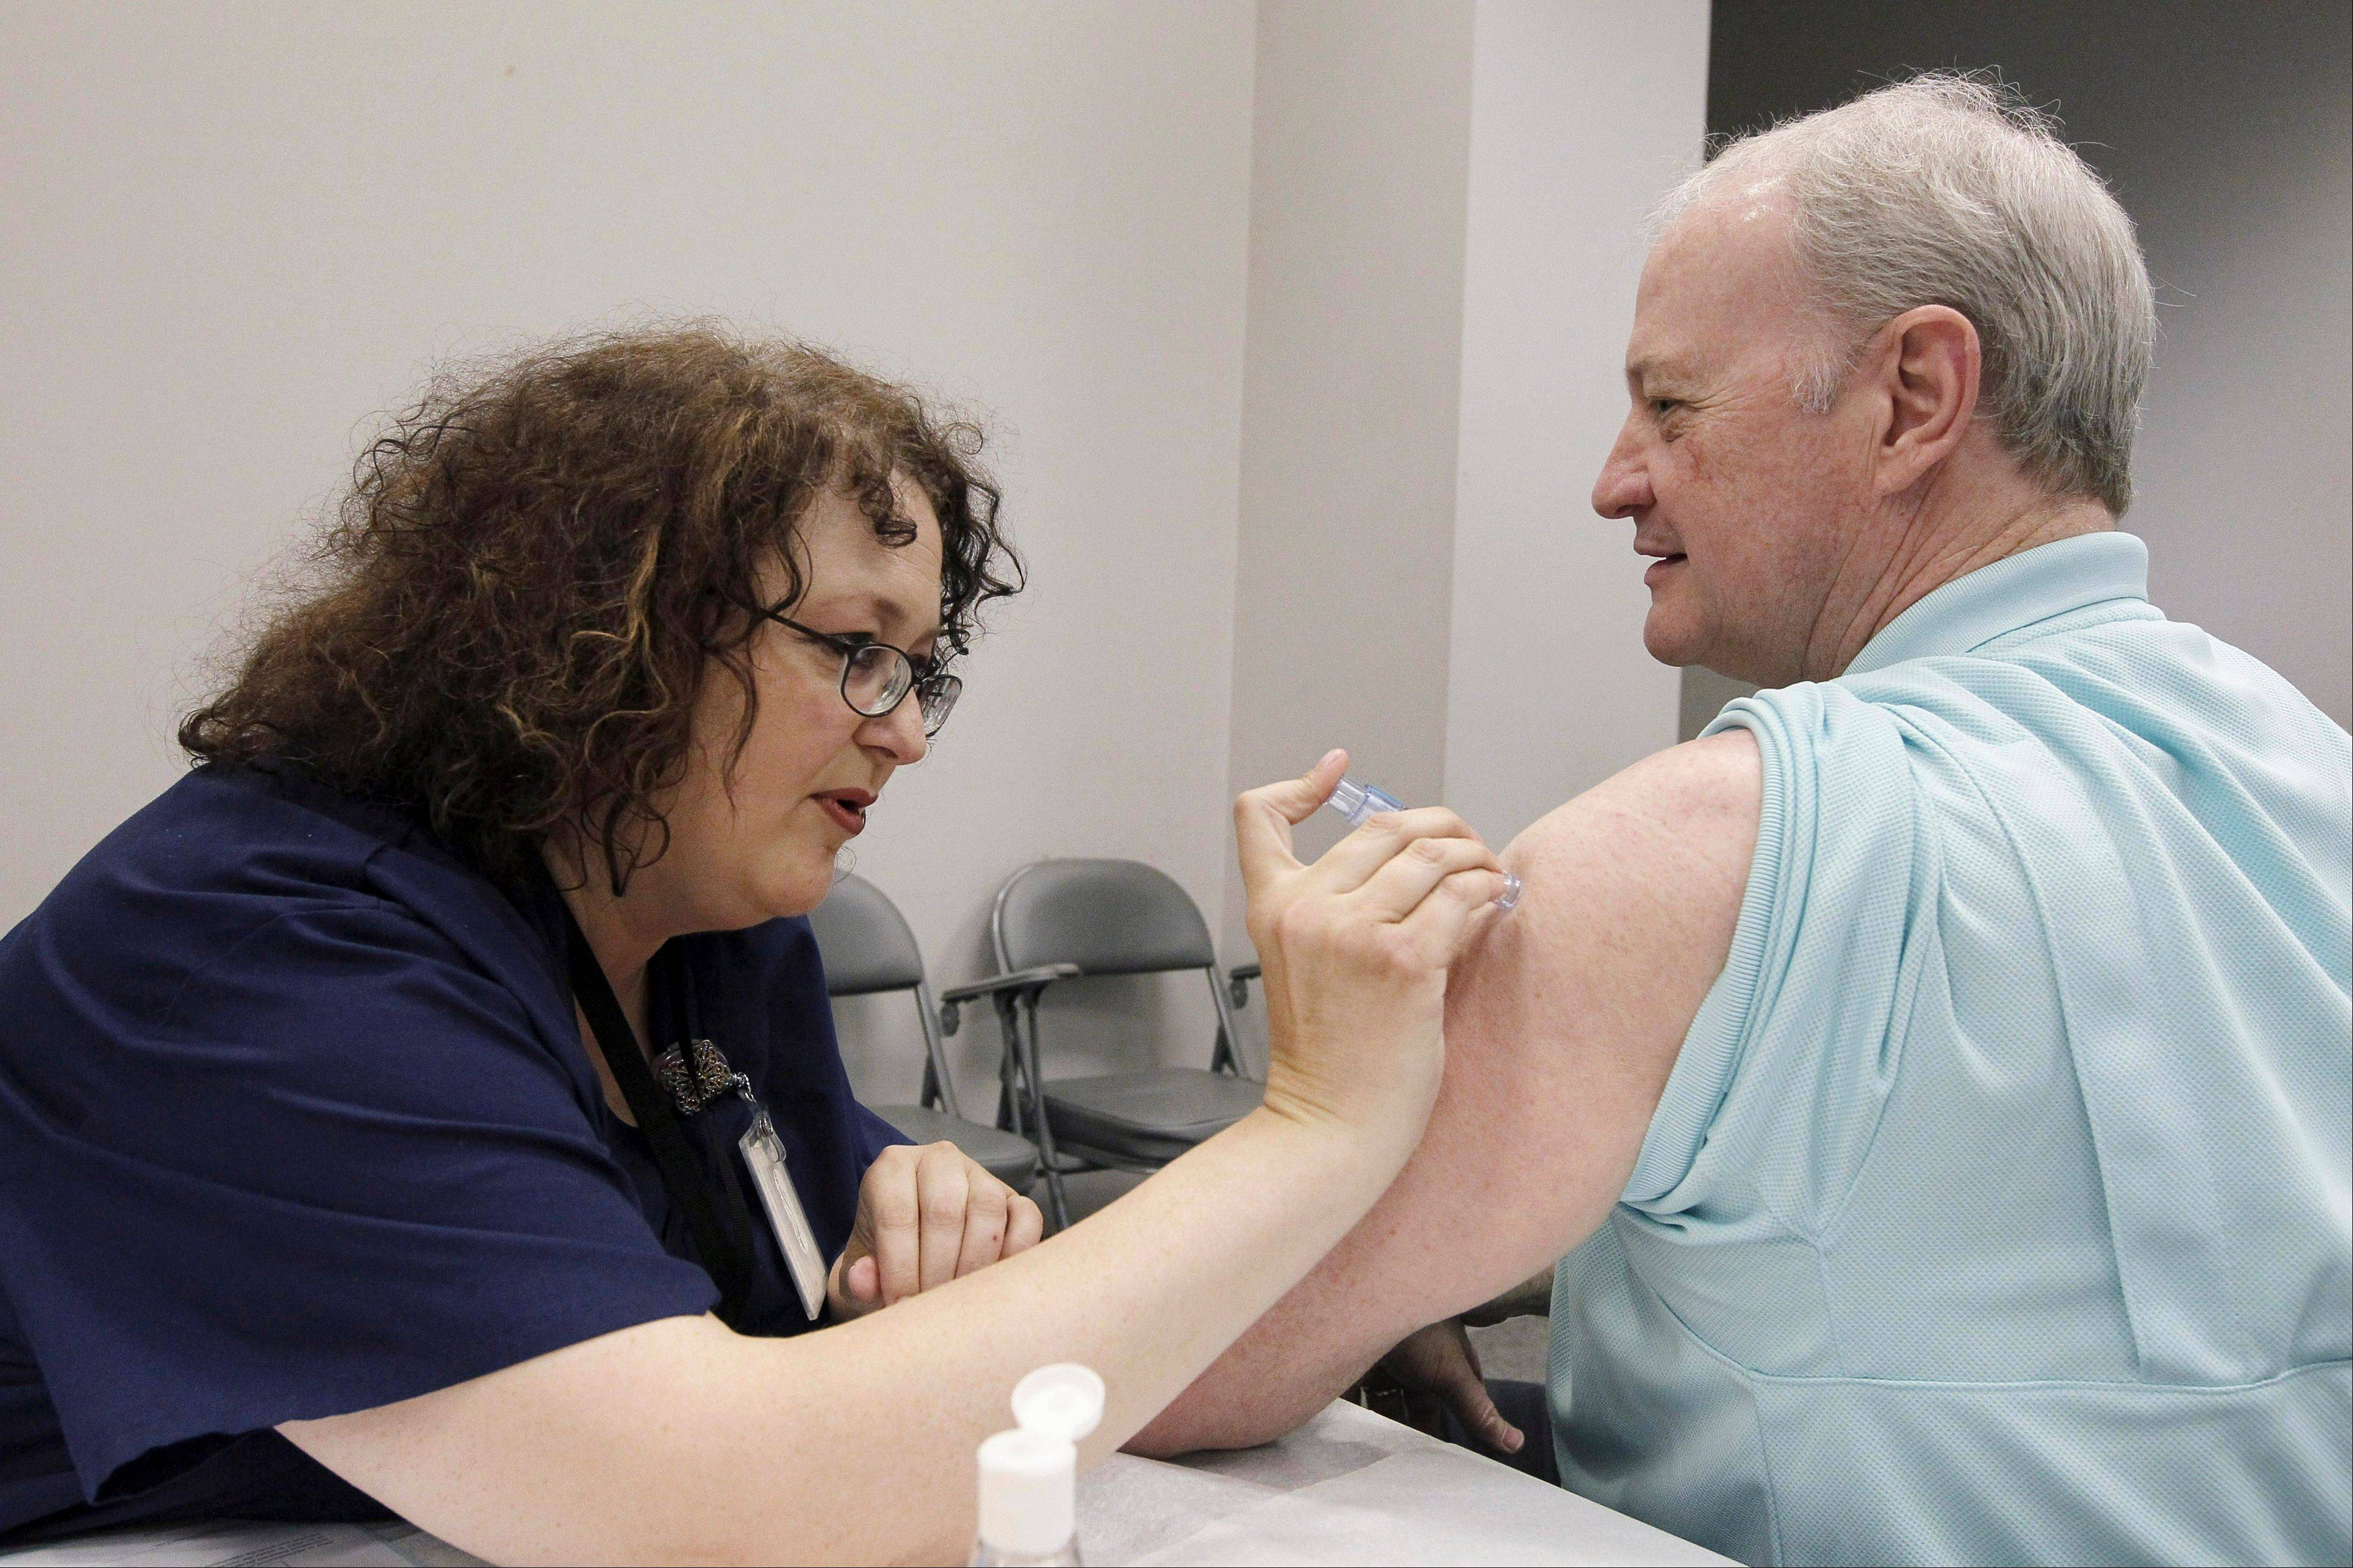 Registered nurse Rosemary Jones with the Jackson, Miss., Health Department gives a flu shot to Bill Staples. Federal officials estimate that this year's flu vaccine is only about 60 percent effective.